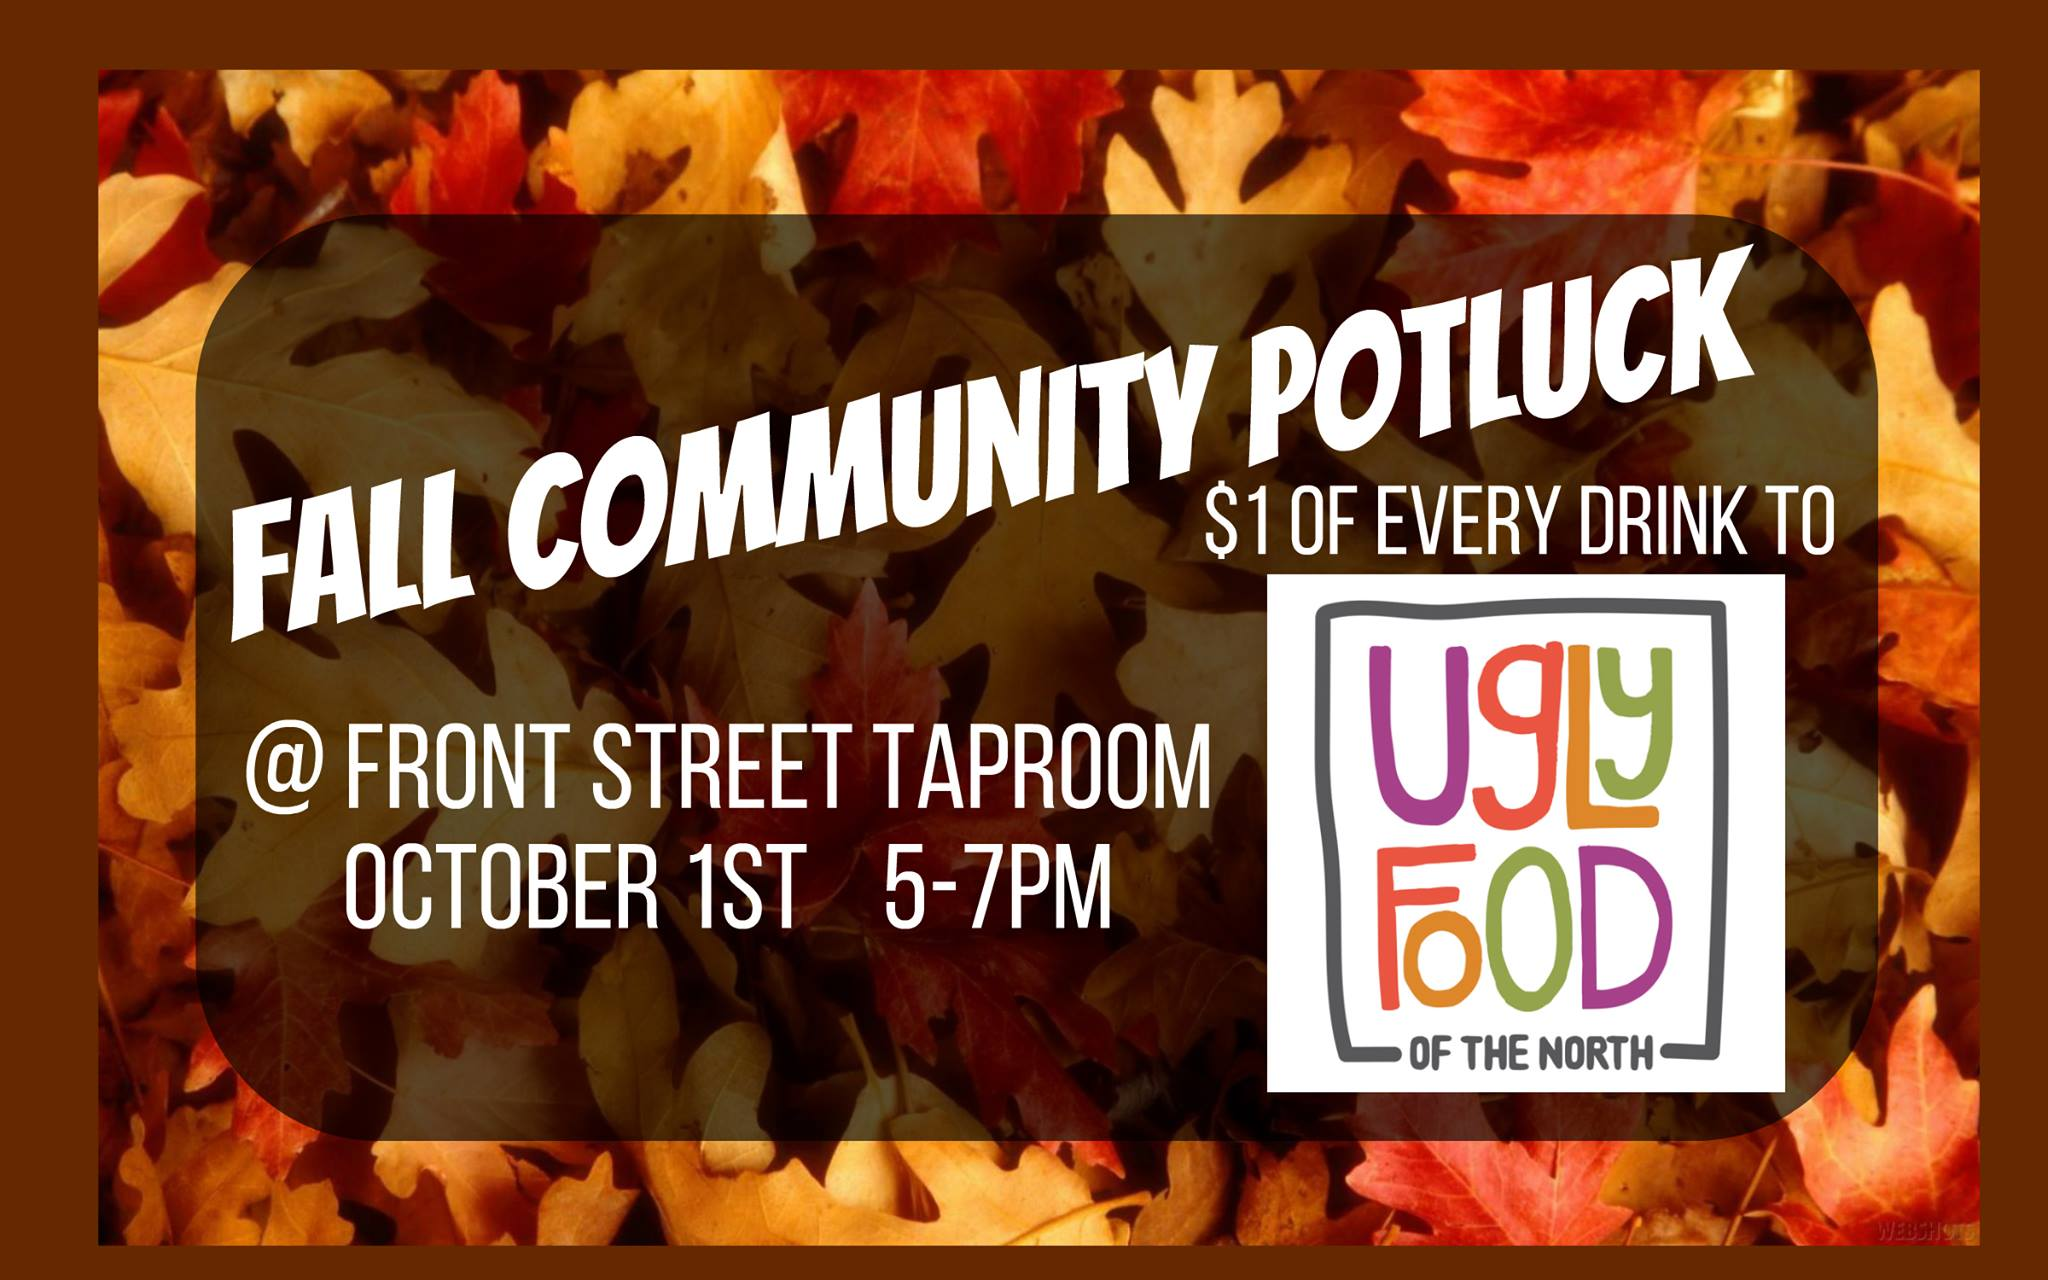 October 2017 -  Fall Community Potluck  at Front Street Taproom celebrated the changing seasons and included lots of imperfect produce from Ugly Food Day at the Red River Market.